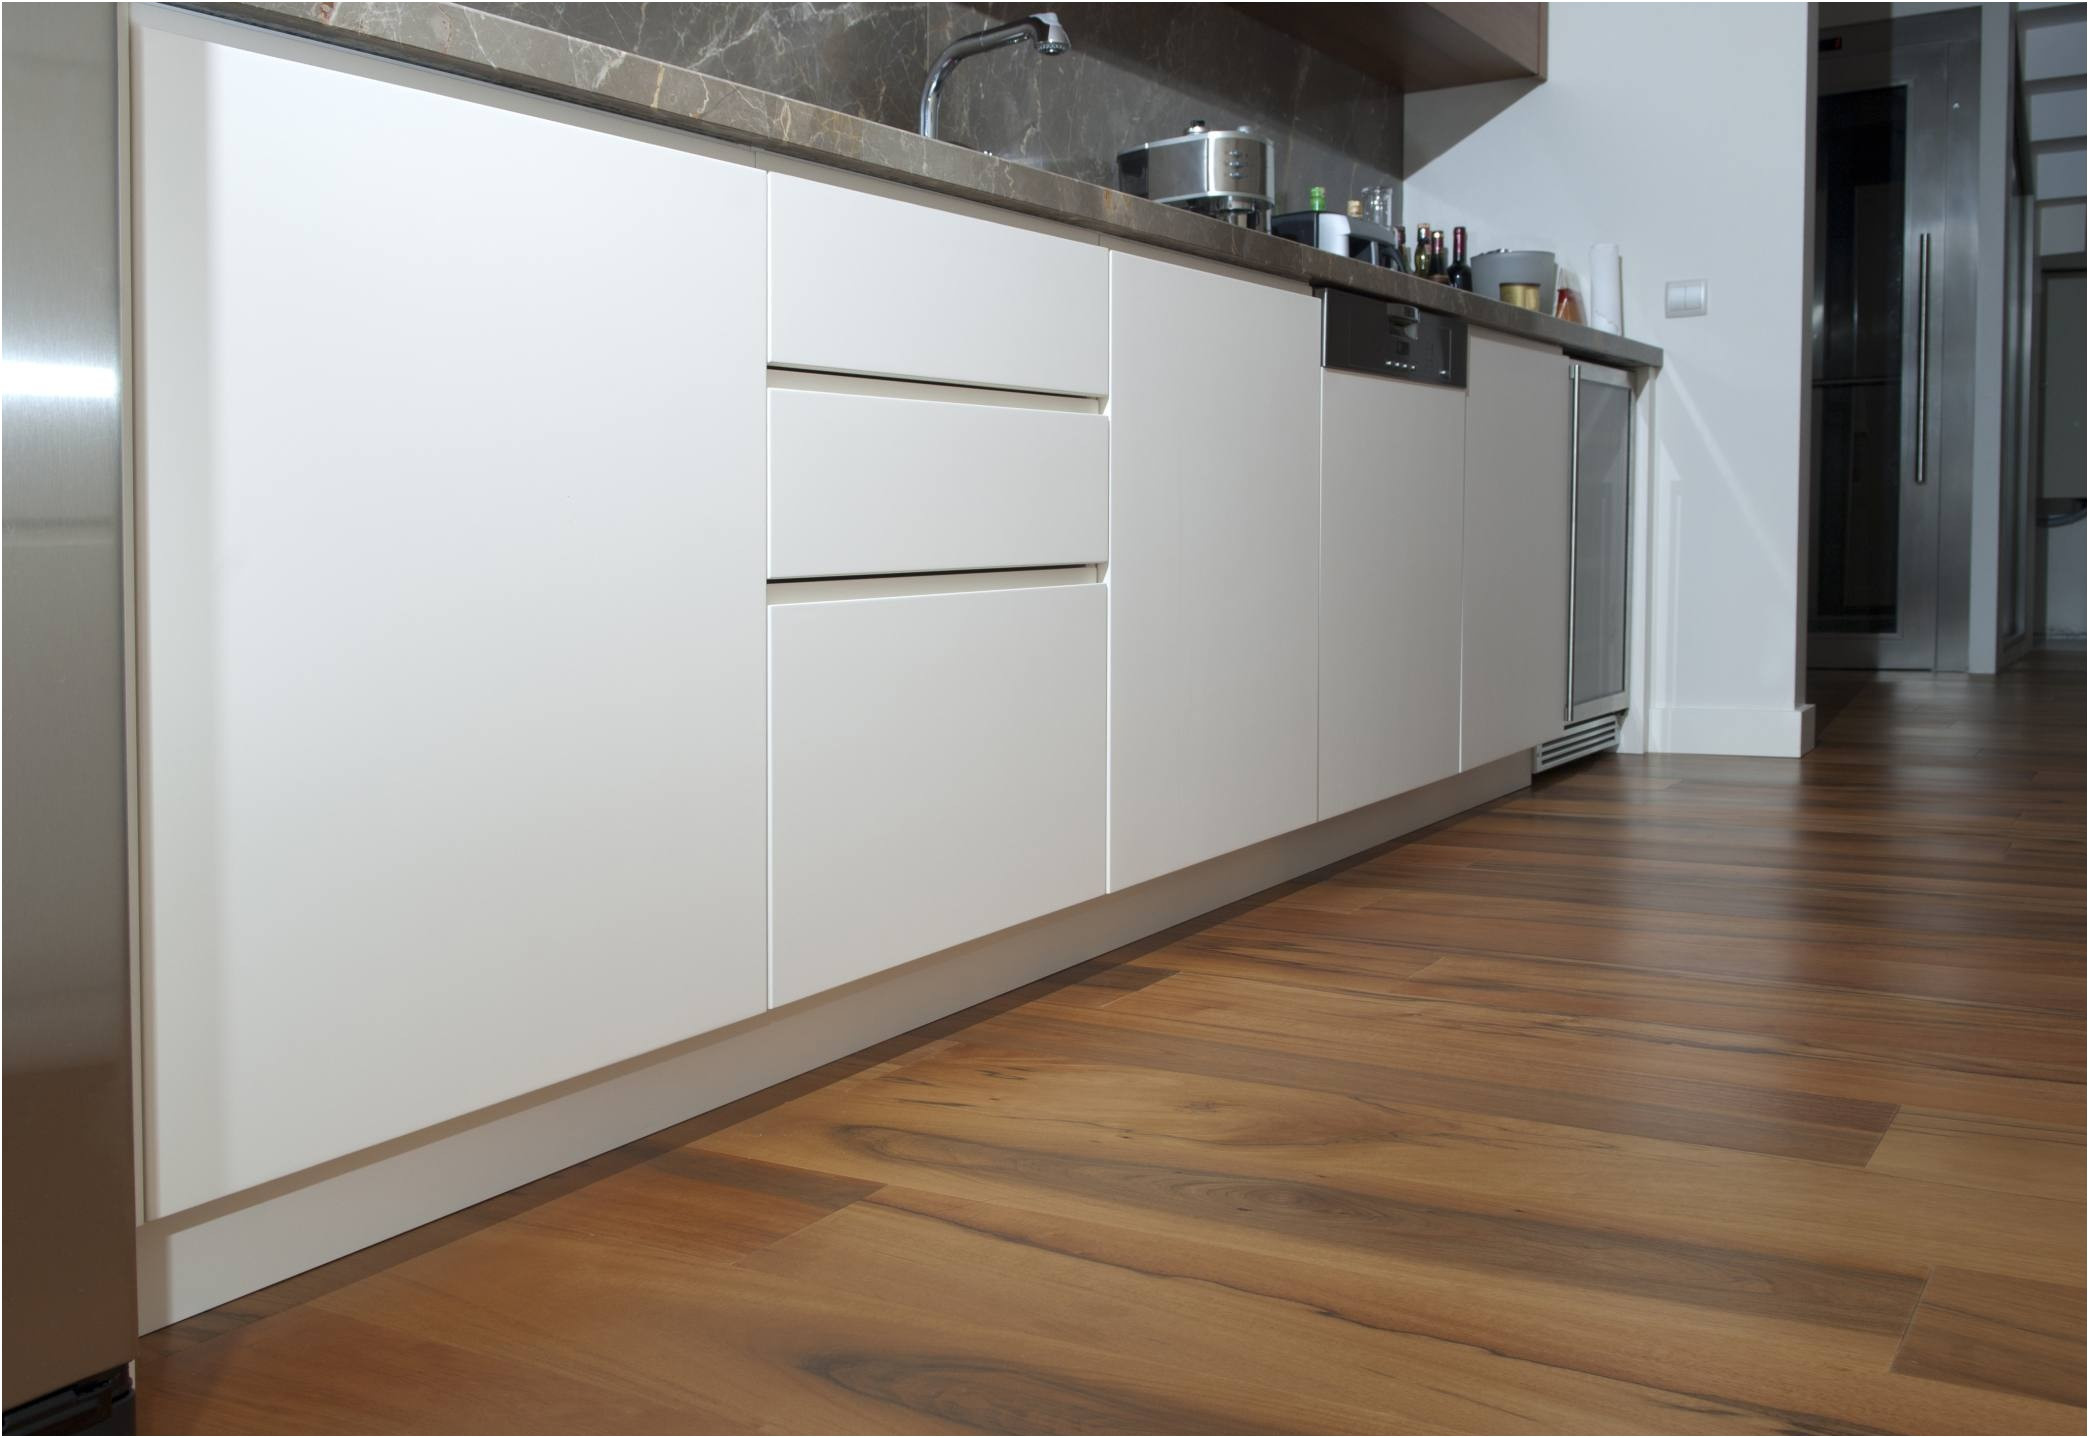 bruce hardwood flooring installation guide of best laminate wood flooring for kitchens best of charming kitchen for best laminate wood flooring for kitchens inspirational cheap laminate flooring reviews and buyer s guide of